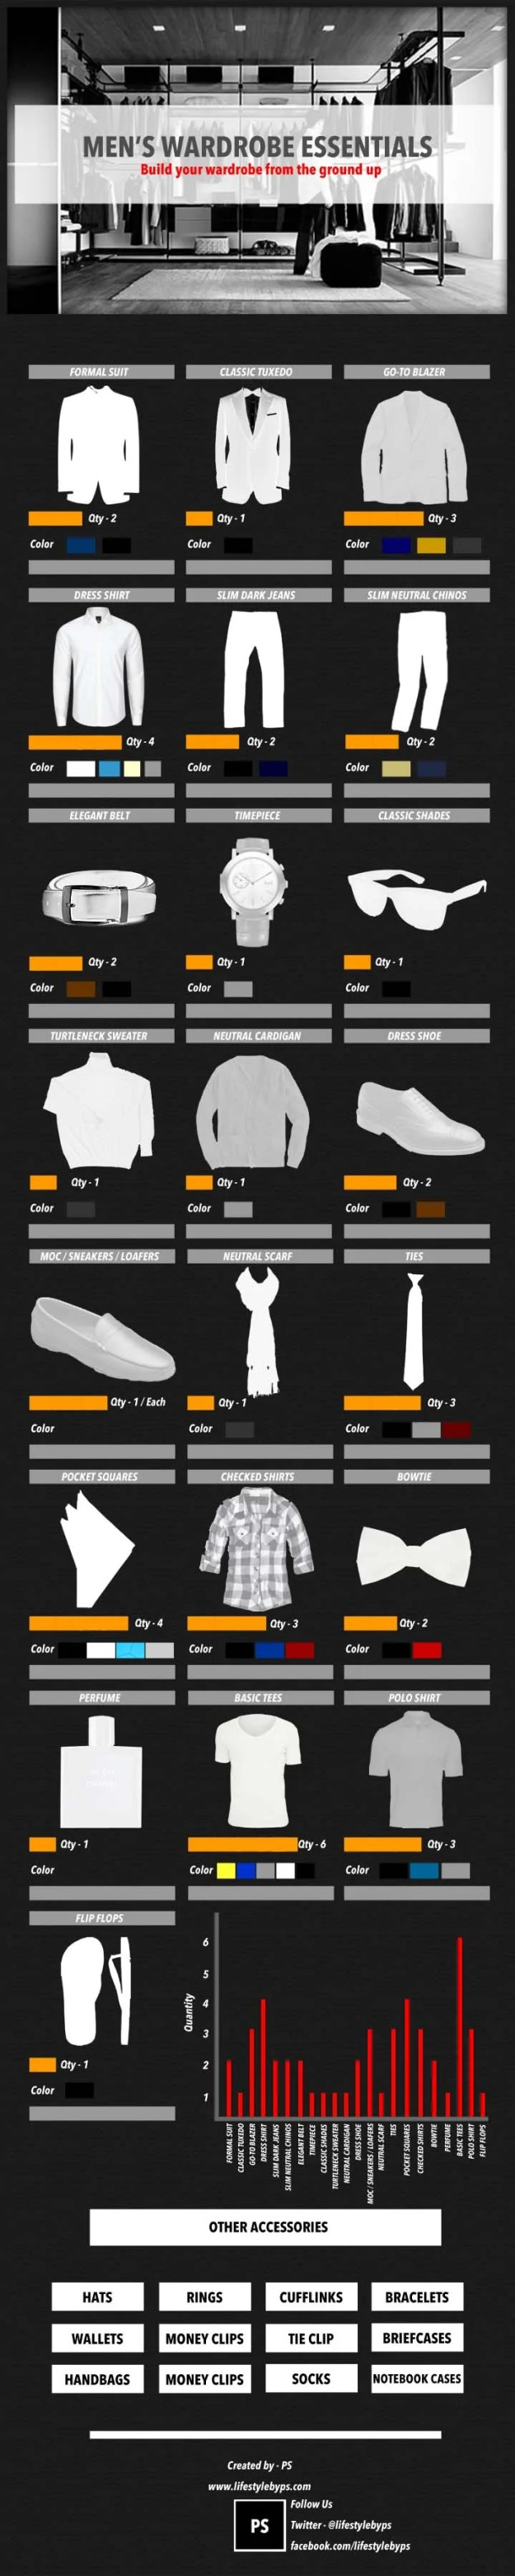 Wardrobe Essentials Men